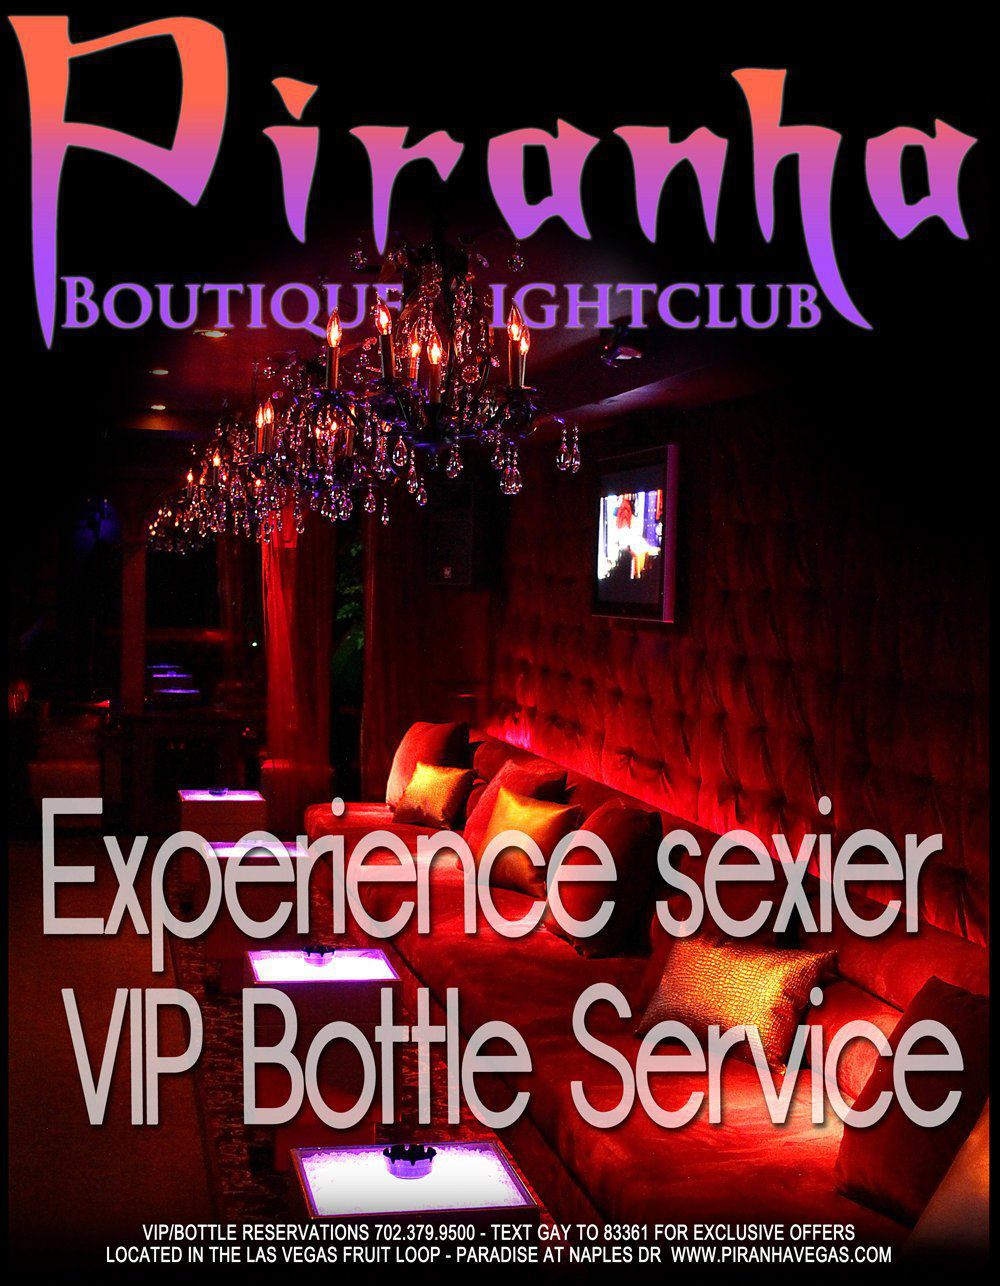 Photo of Piranha Boutique Nightclub